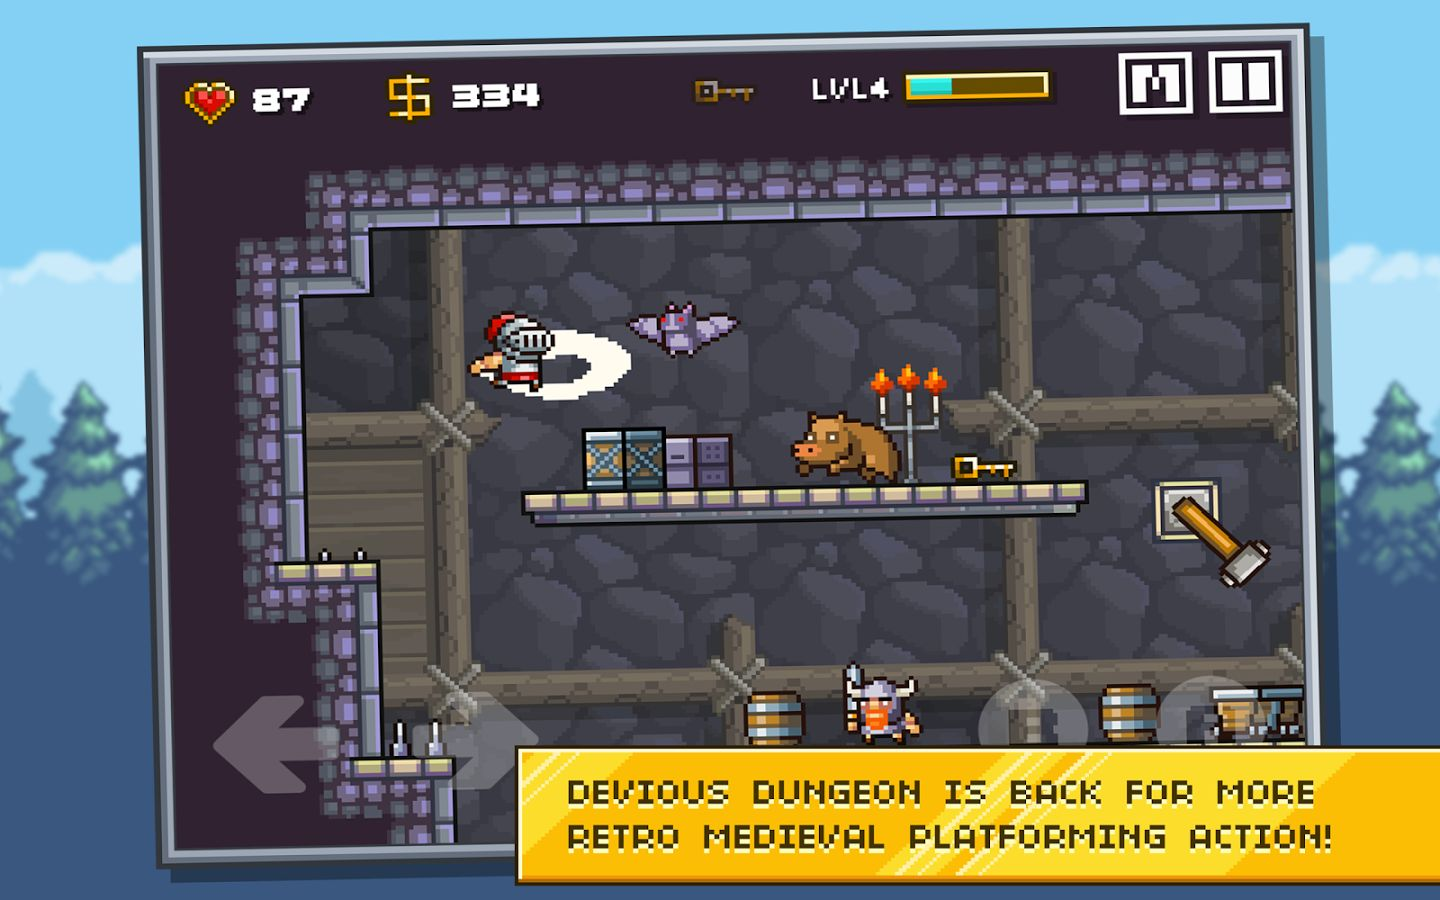 Devious dungeon 2 1. 3 download apk for android aptoide.